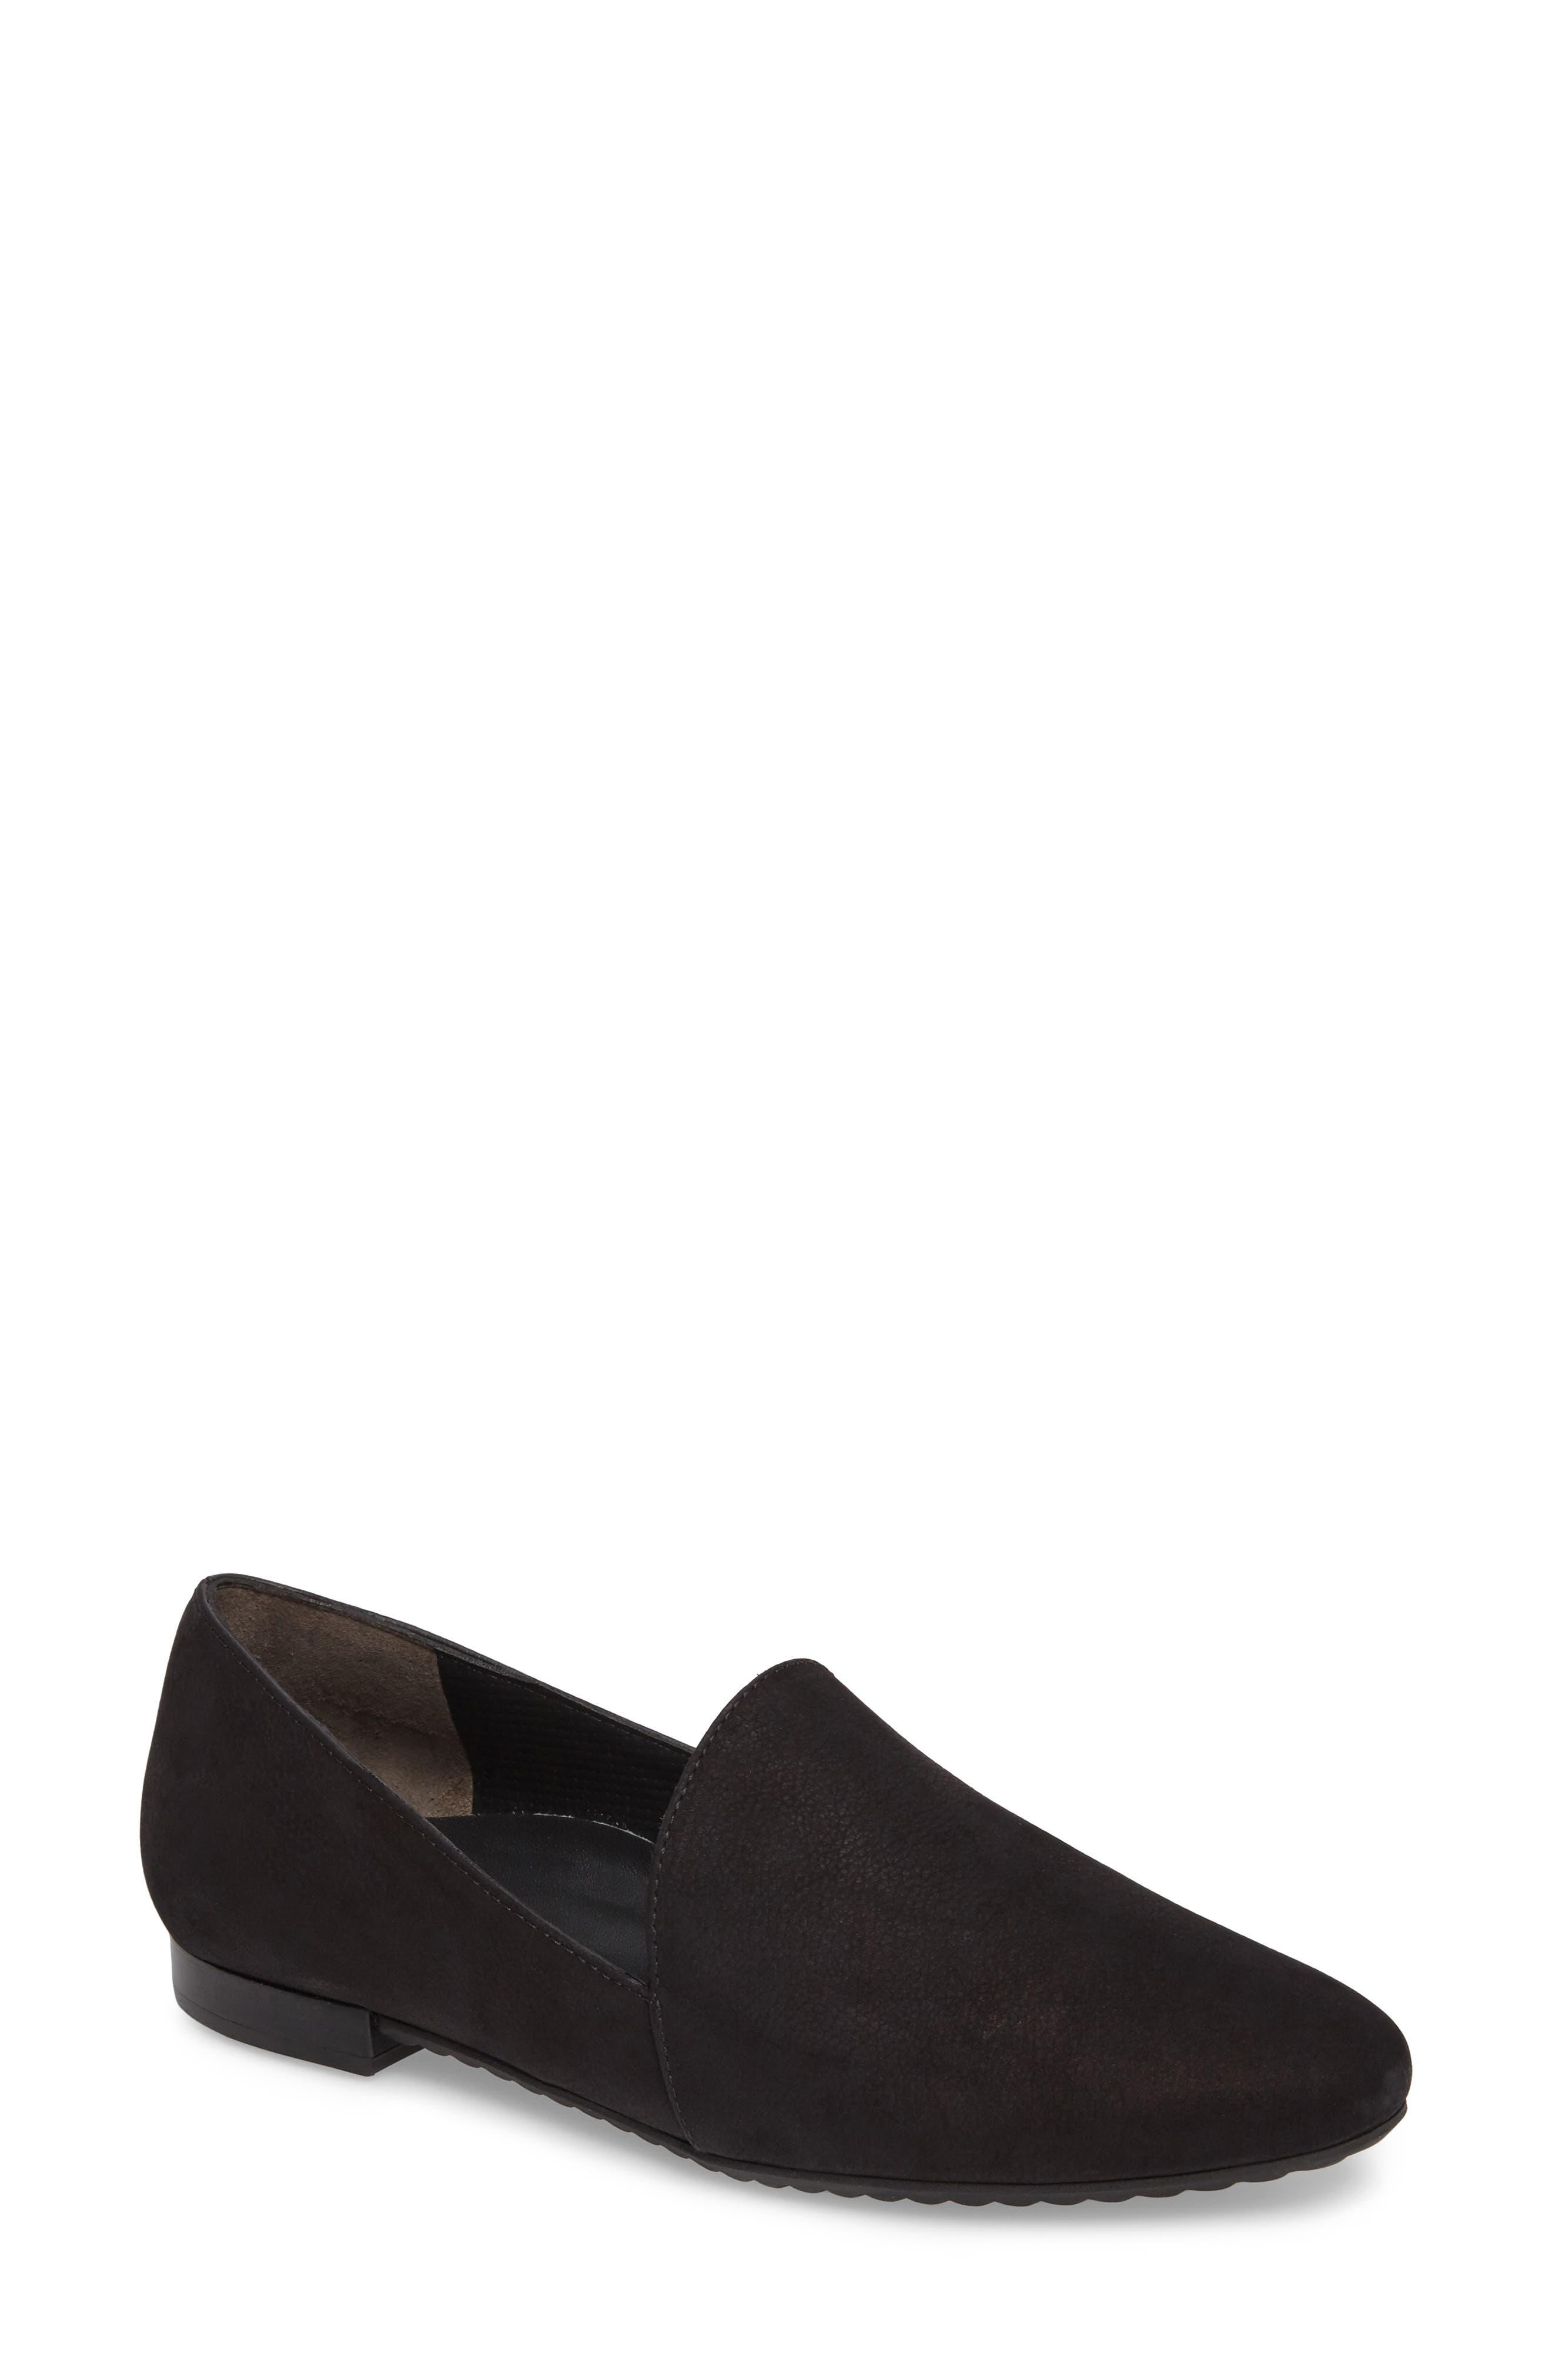 Naomi Loafer,                         Main,                         color,